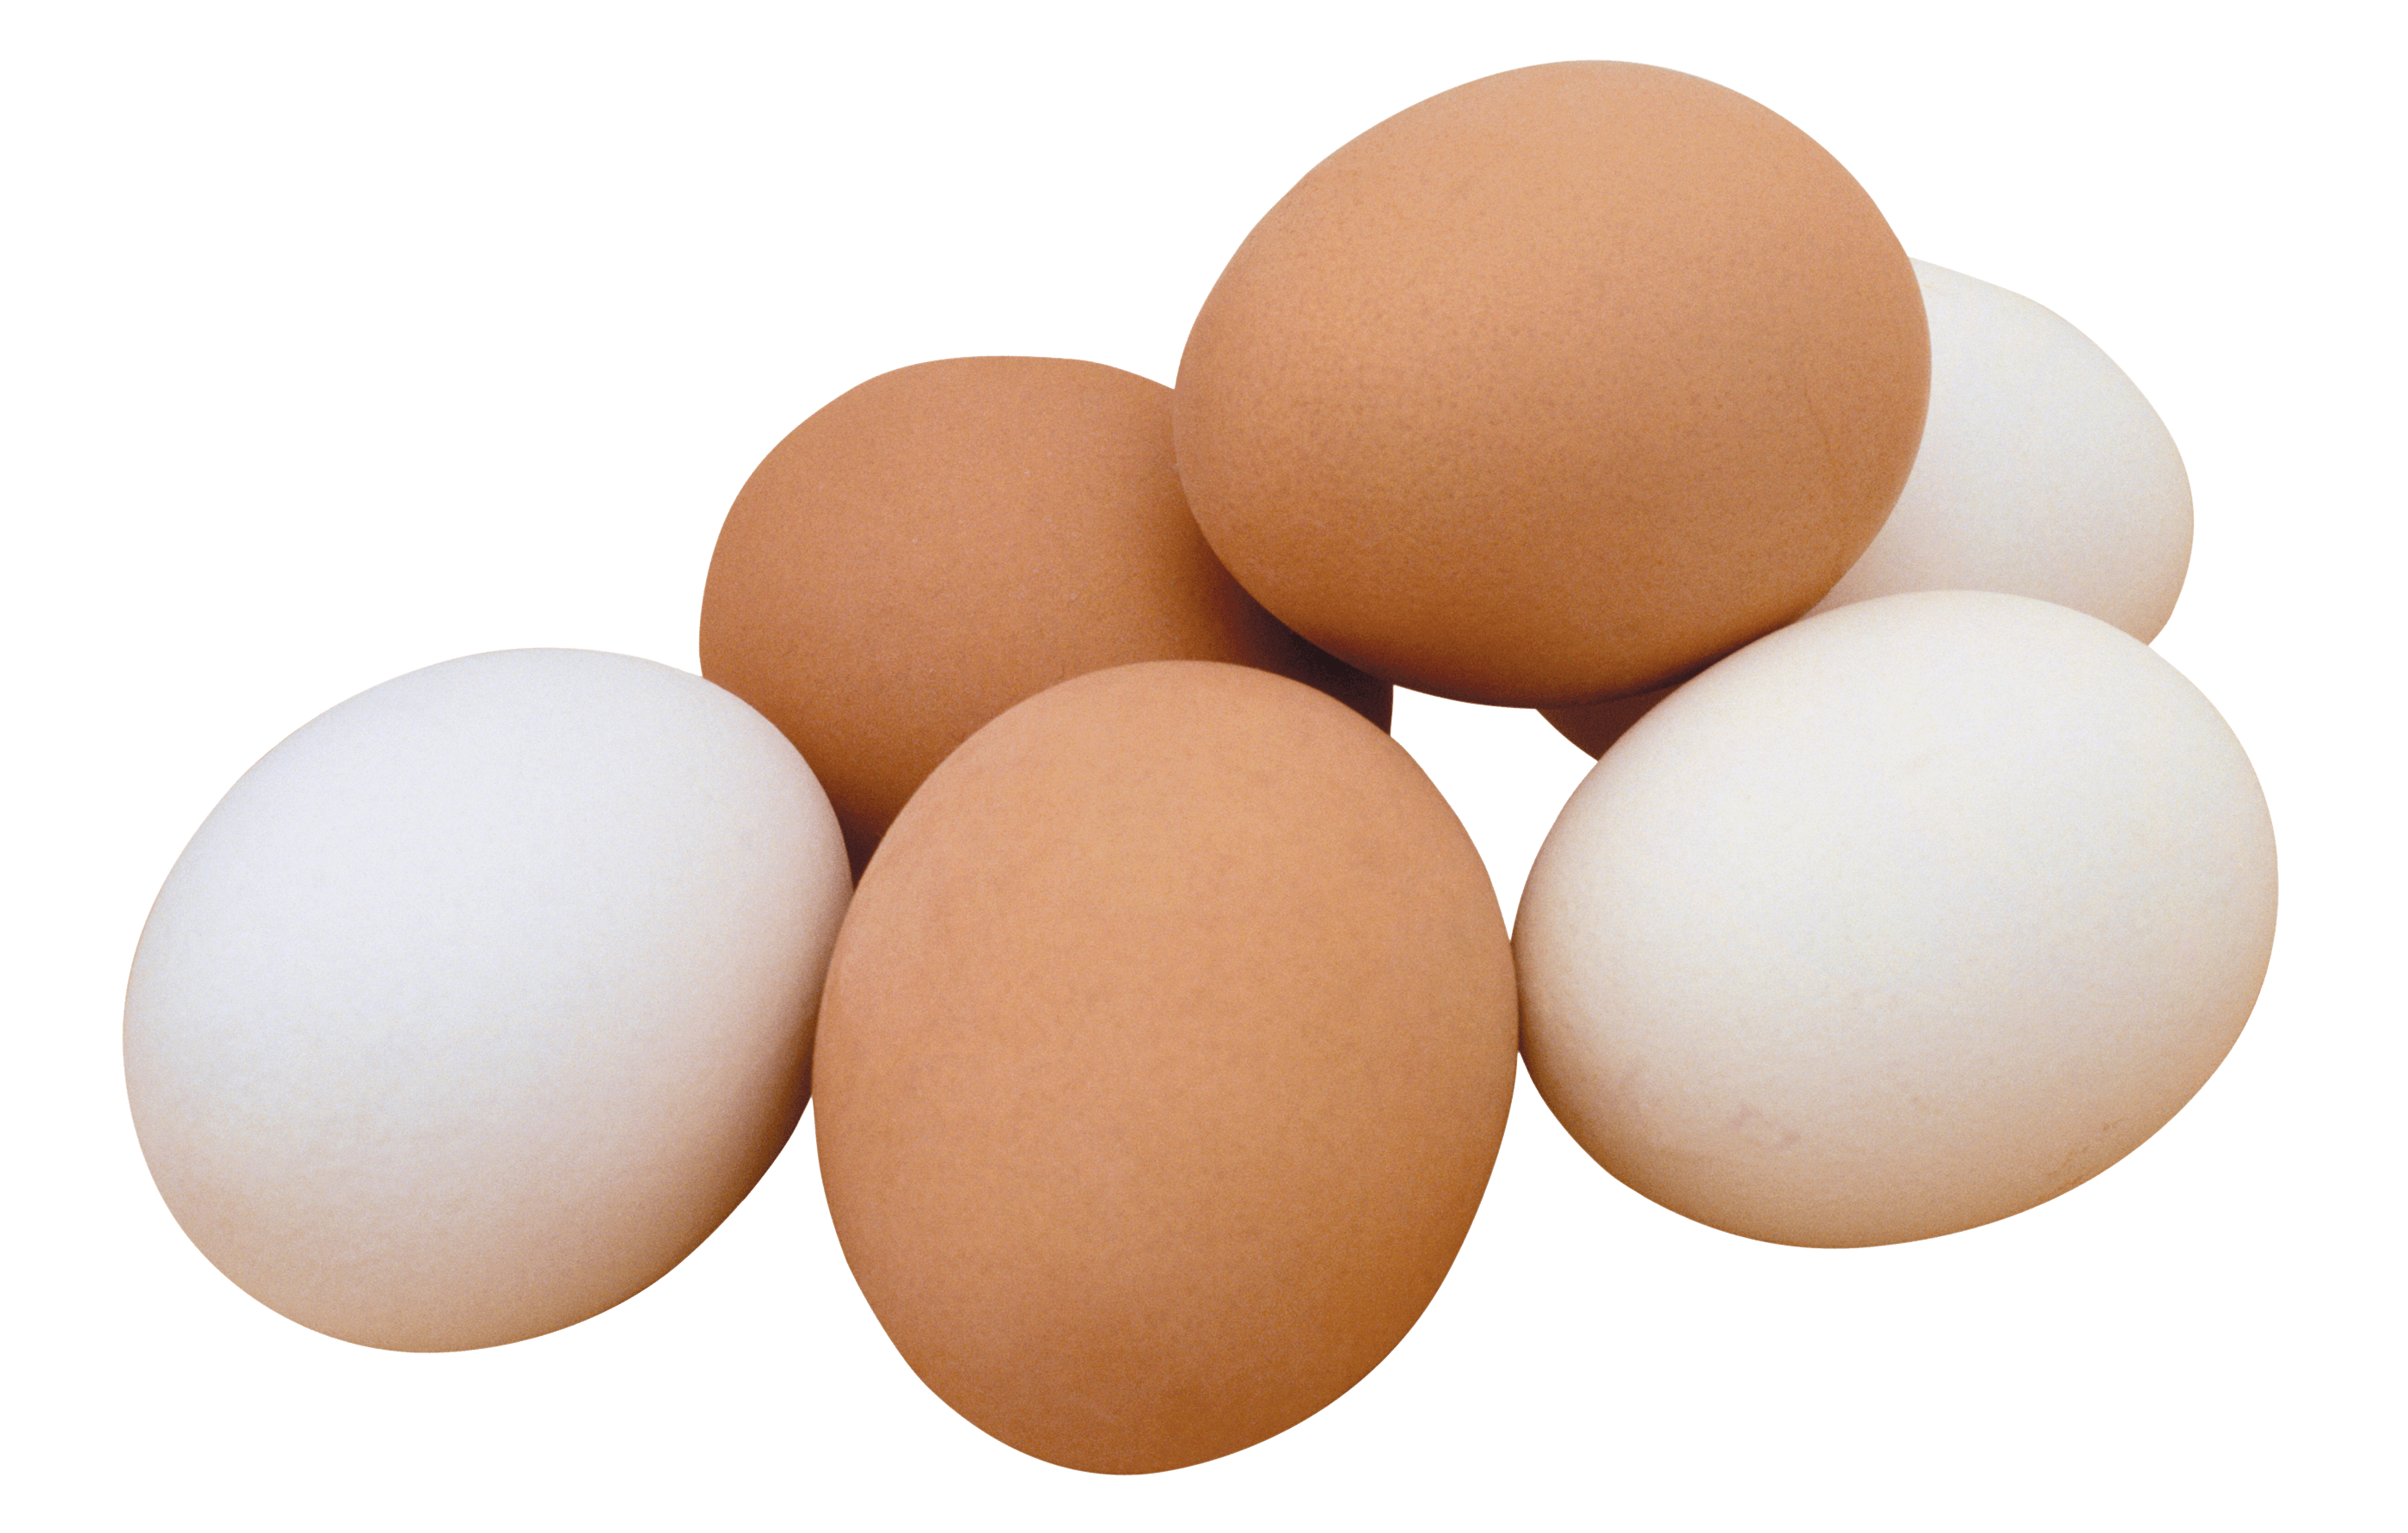 freeuse stock Basket png stickpng egg. Transparent eggs